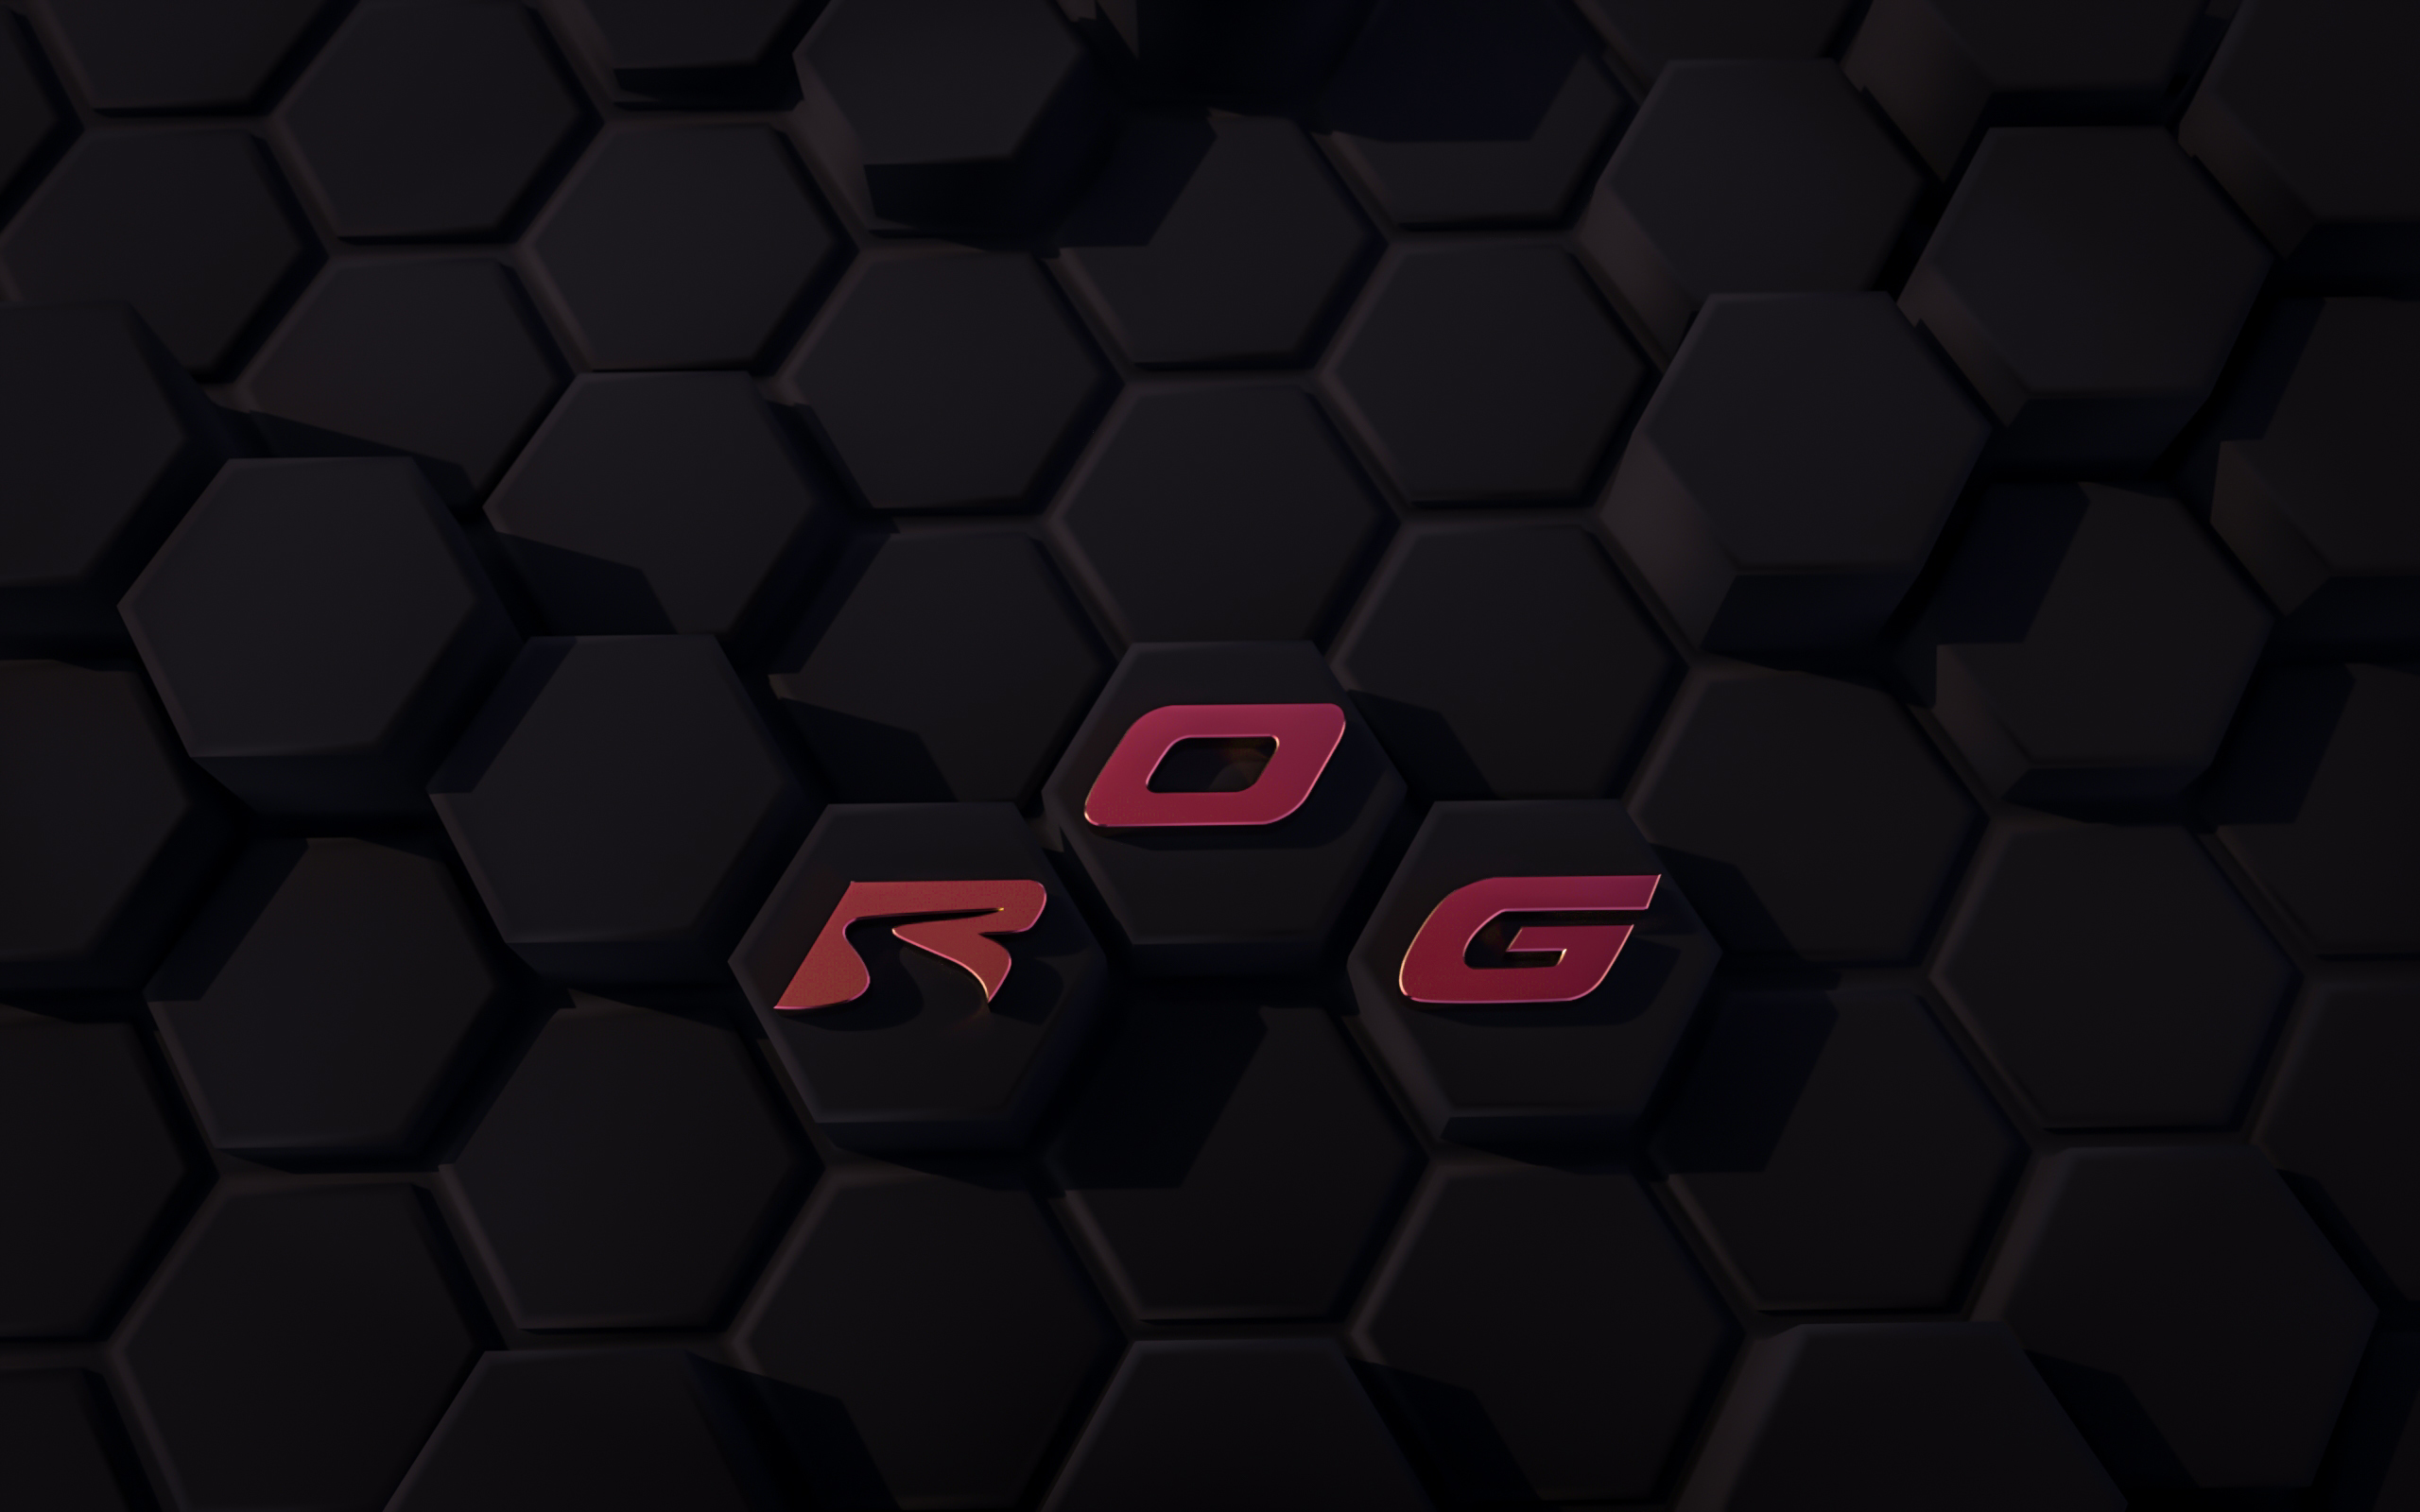 rog official wallpaper 2013 - photo #32